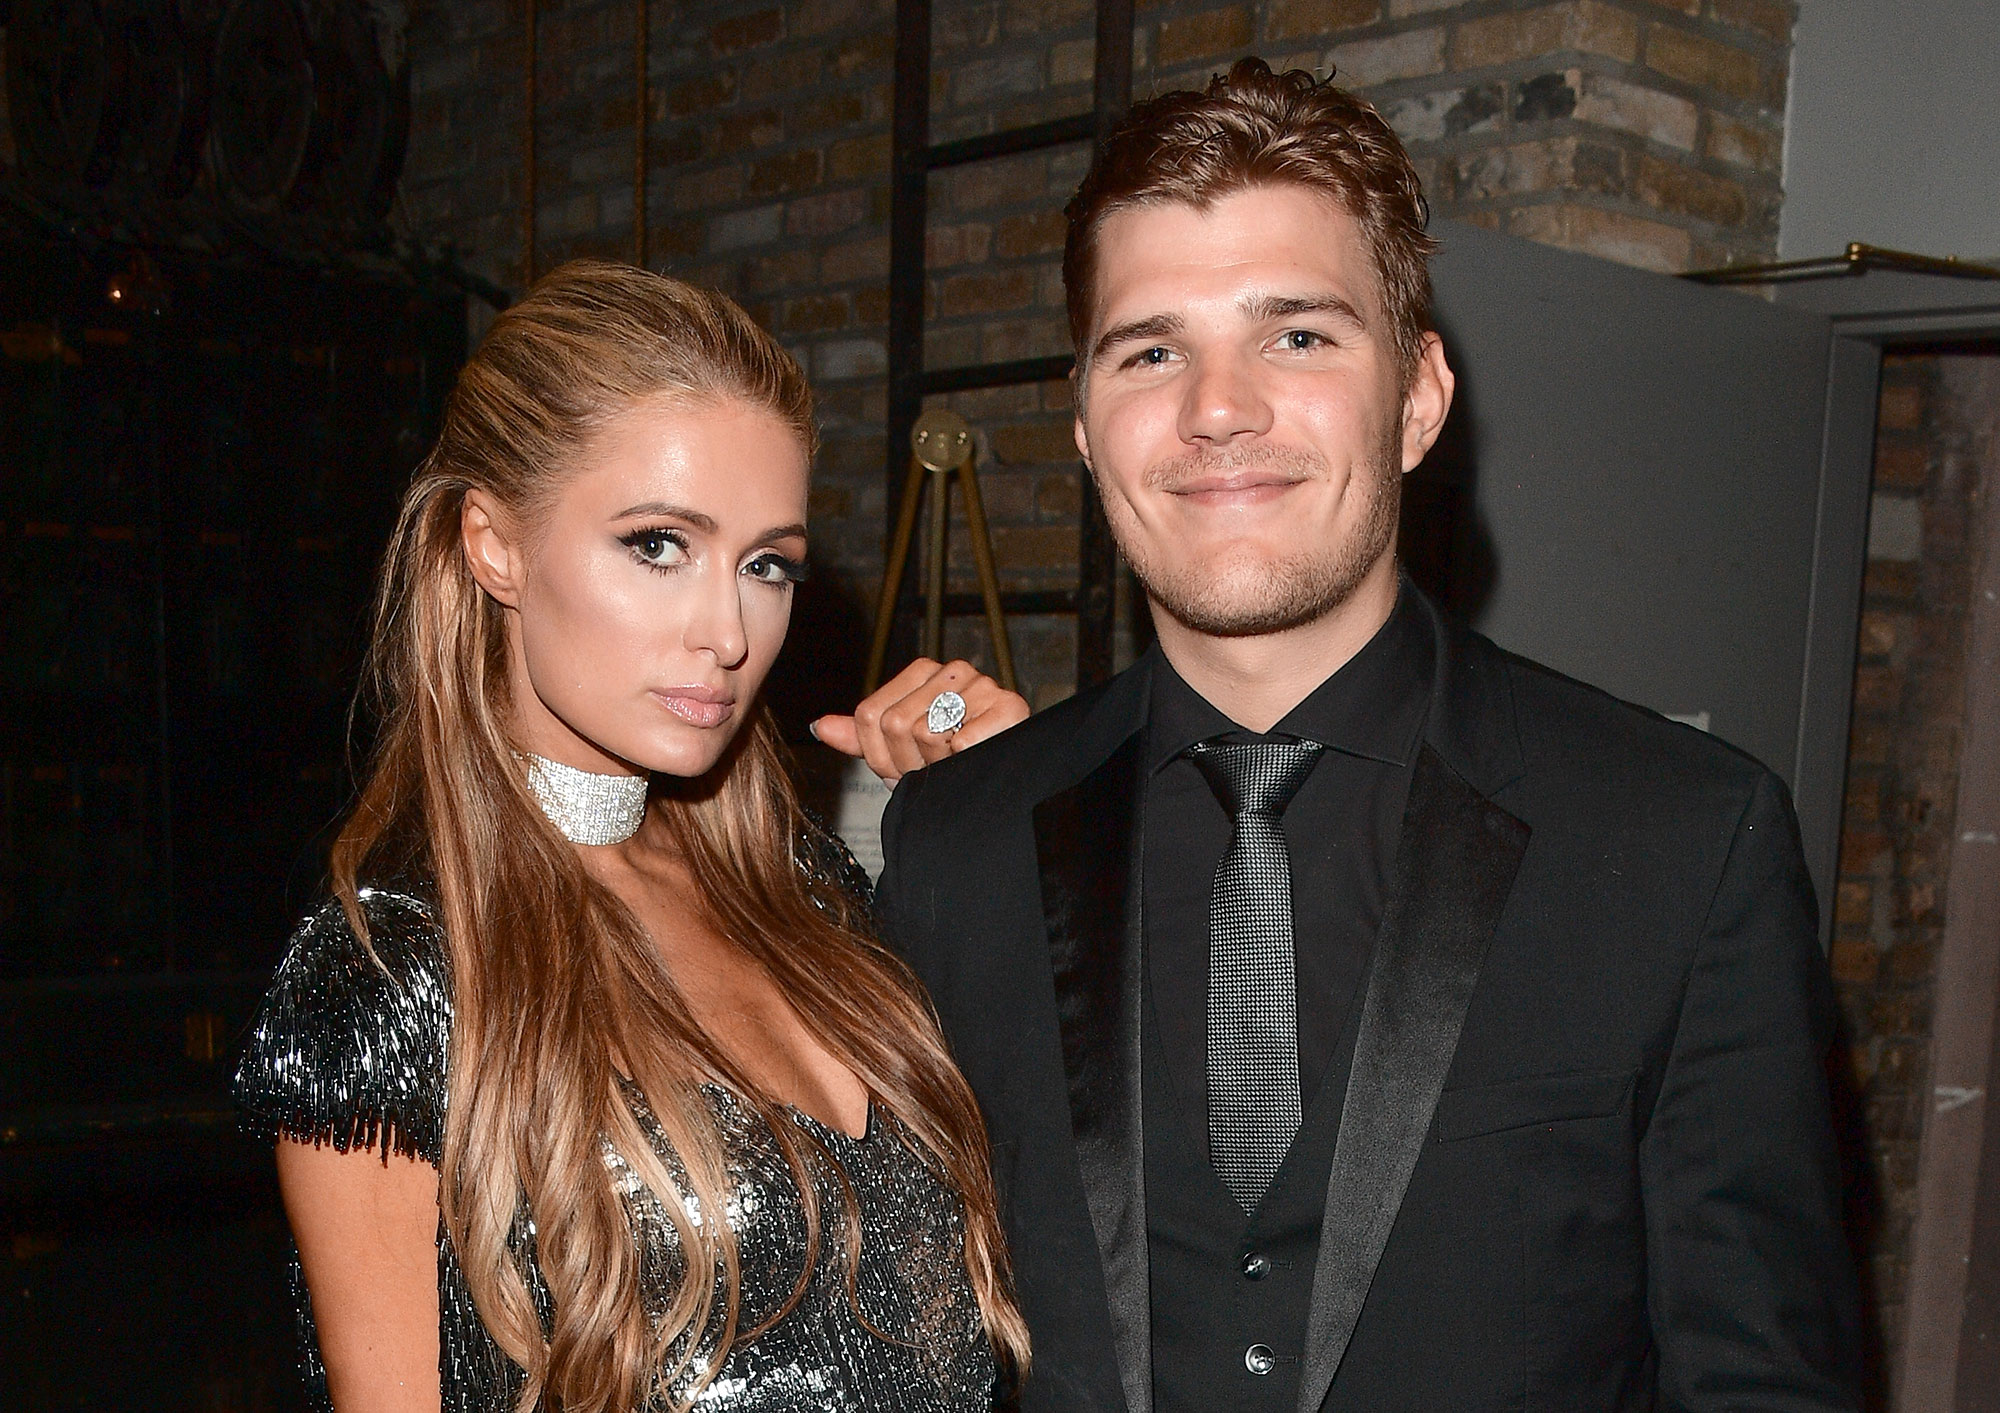 """Paris Hilton's Brother Barron Hilton Knows She'll Find Love Again After Ending Engagement to Chris Zylka - Paris Hilton (L) and Chris Zylka attend the """"The Death And Life Of John F. Donovan"""" premiere during 2018 Toronto International Film Festival at Winter Garden Theatre on September 10, 2018 in Toronto, Canada."""